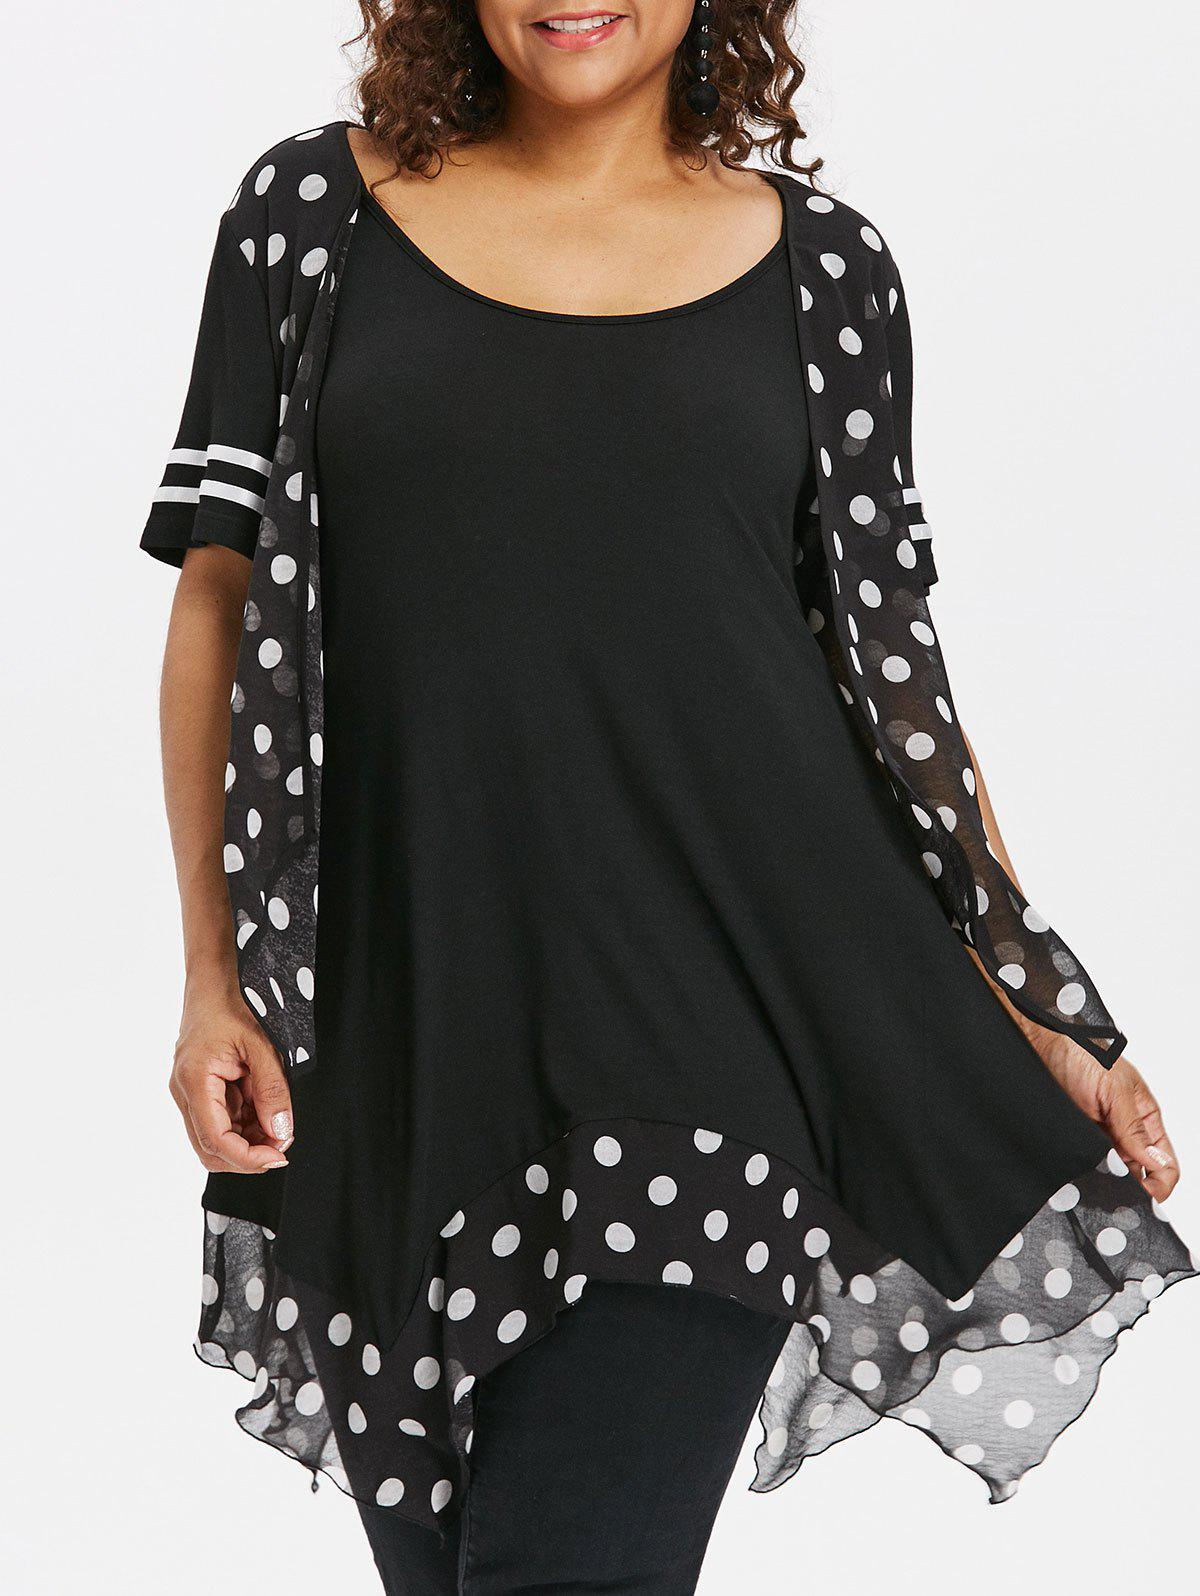 Hot Plus Size Polka Dot Handkerchief T-shirt